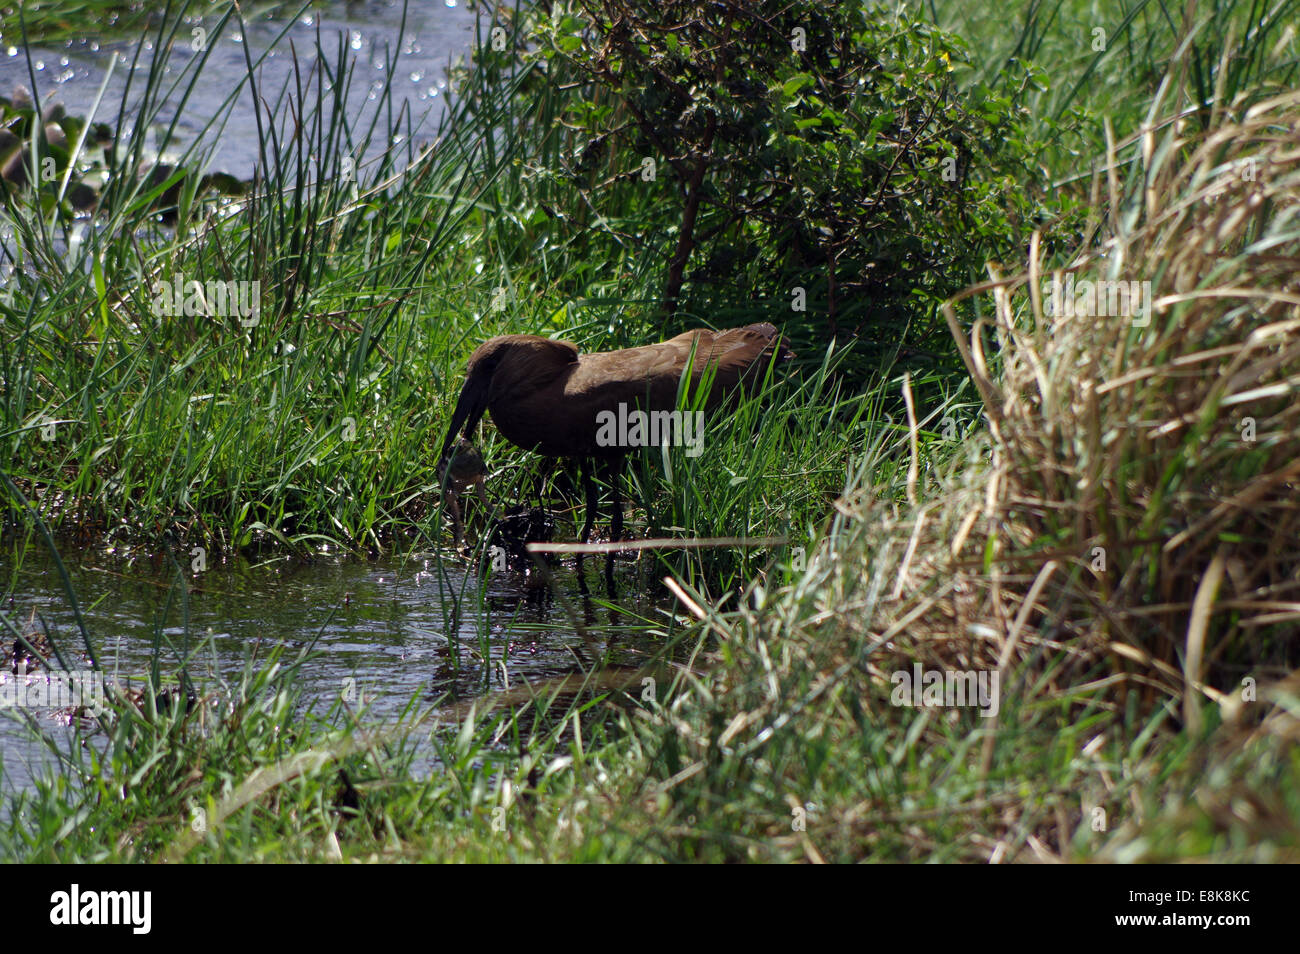 Hammerkop eating a frog - iSimangaliso Wetland Park, South Africa Stock Photo